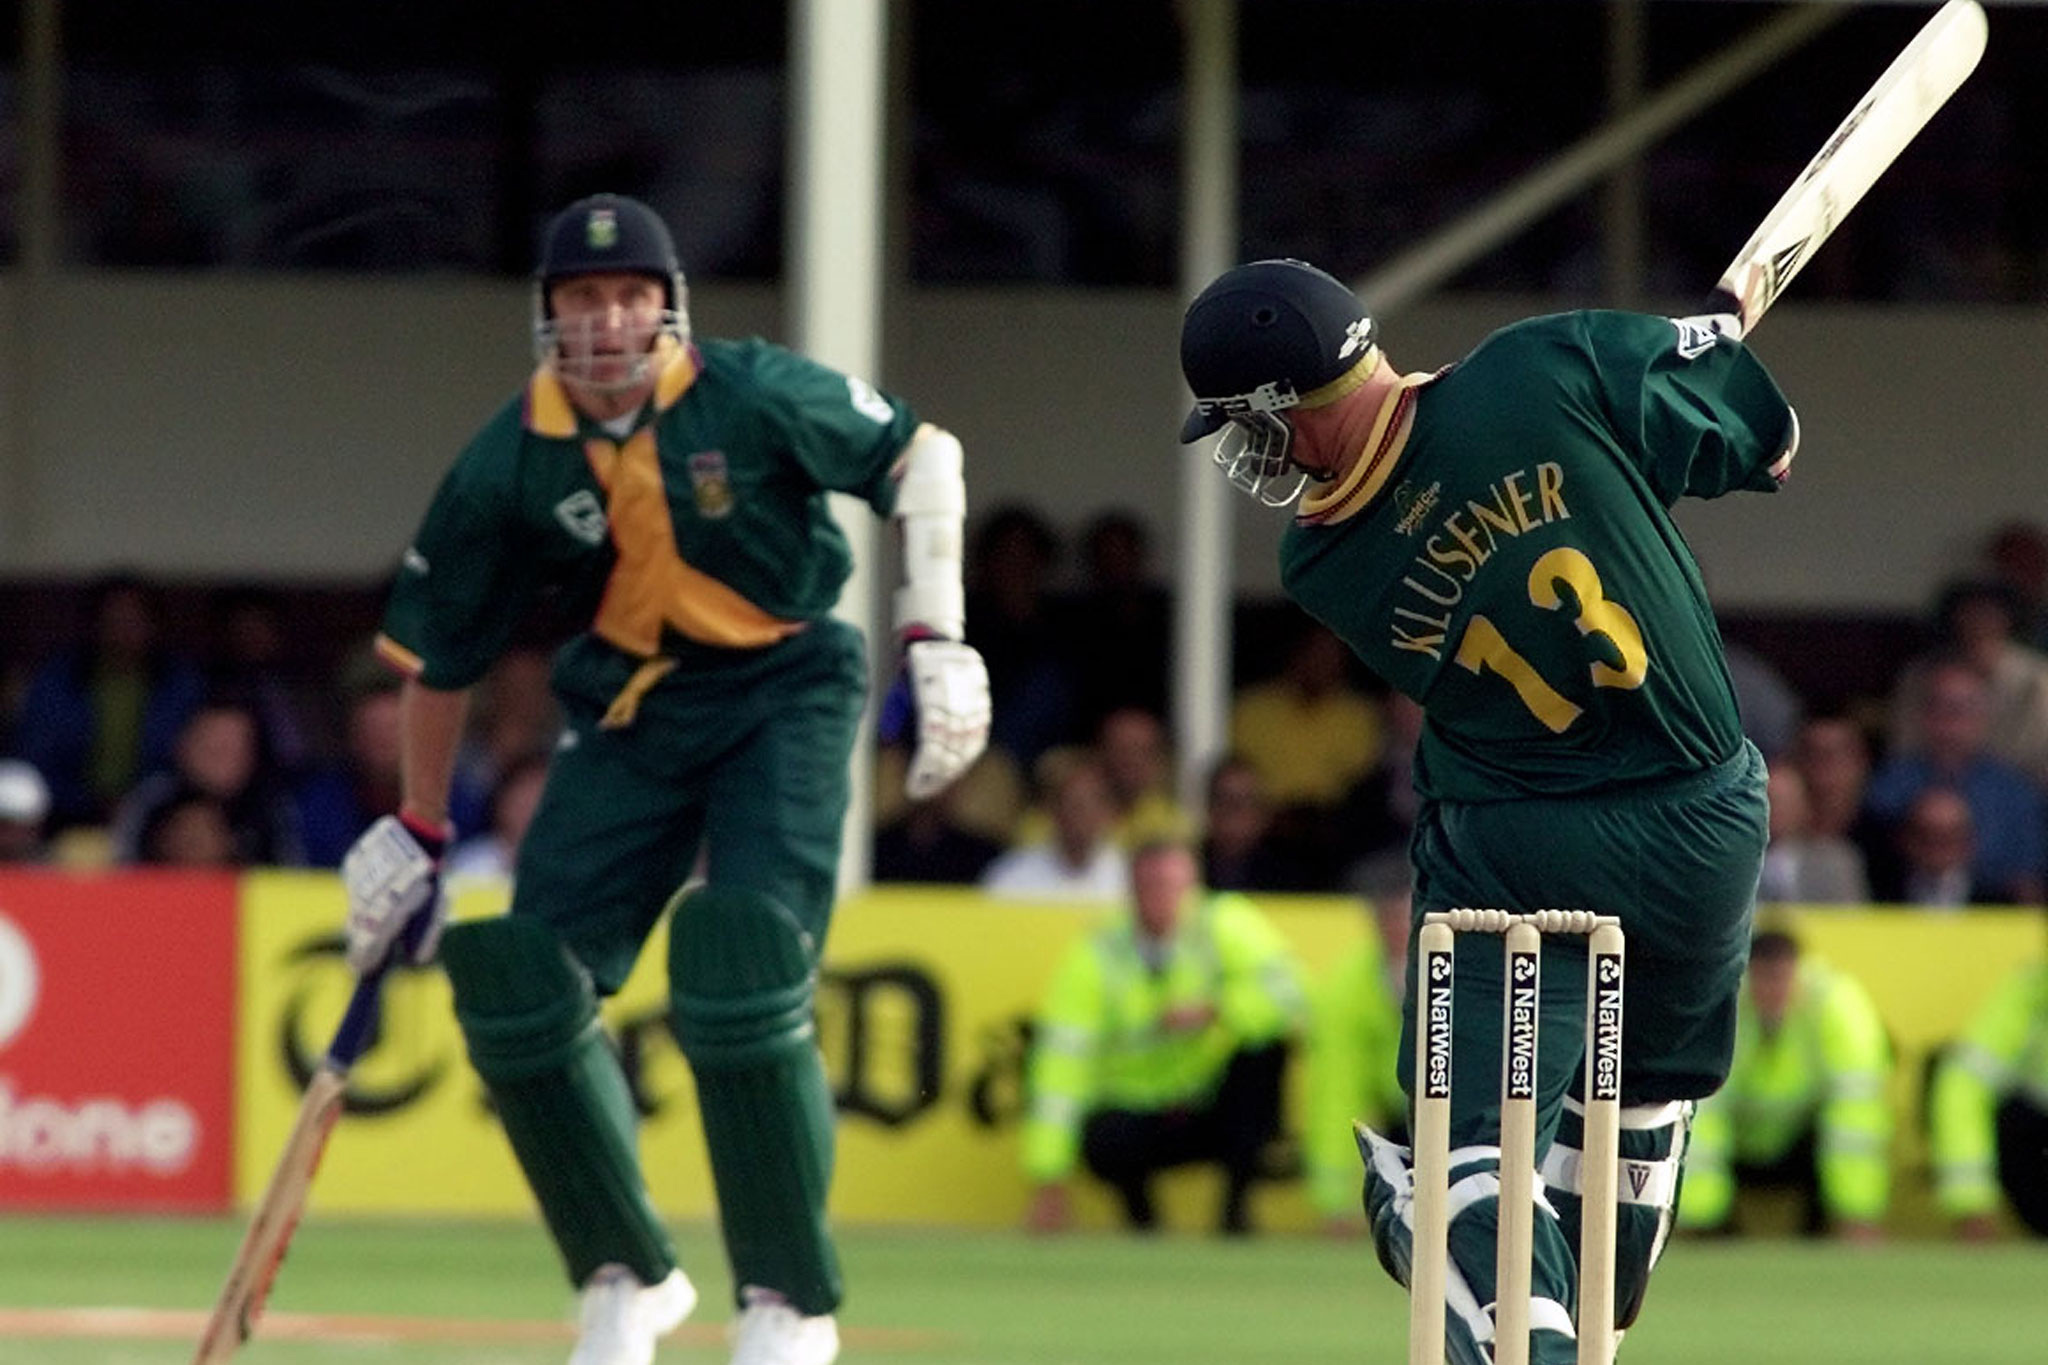 17 June1999: South African batsman Lance Klusener smashes a ball through the onside during the Proteas' semi-final run chase against Australia at Edgbaston in the Cricket World Cup. Teammate Allan Donald, looking on, was run out later with the Proteas one run short of victory. (Photograph by Reuters)